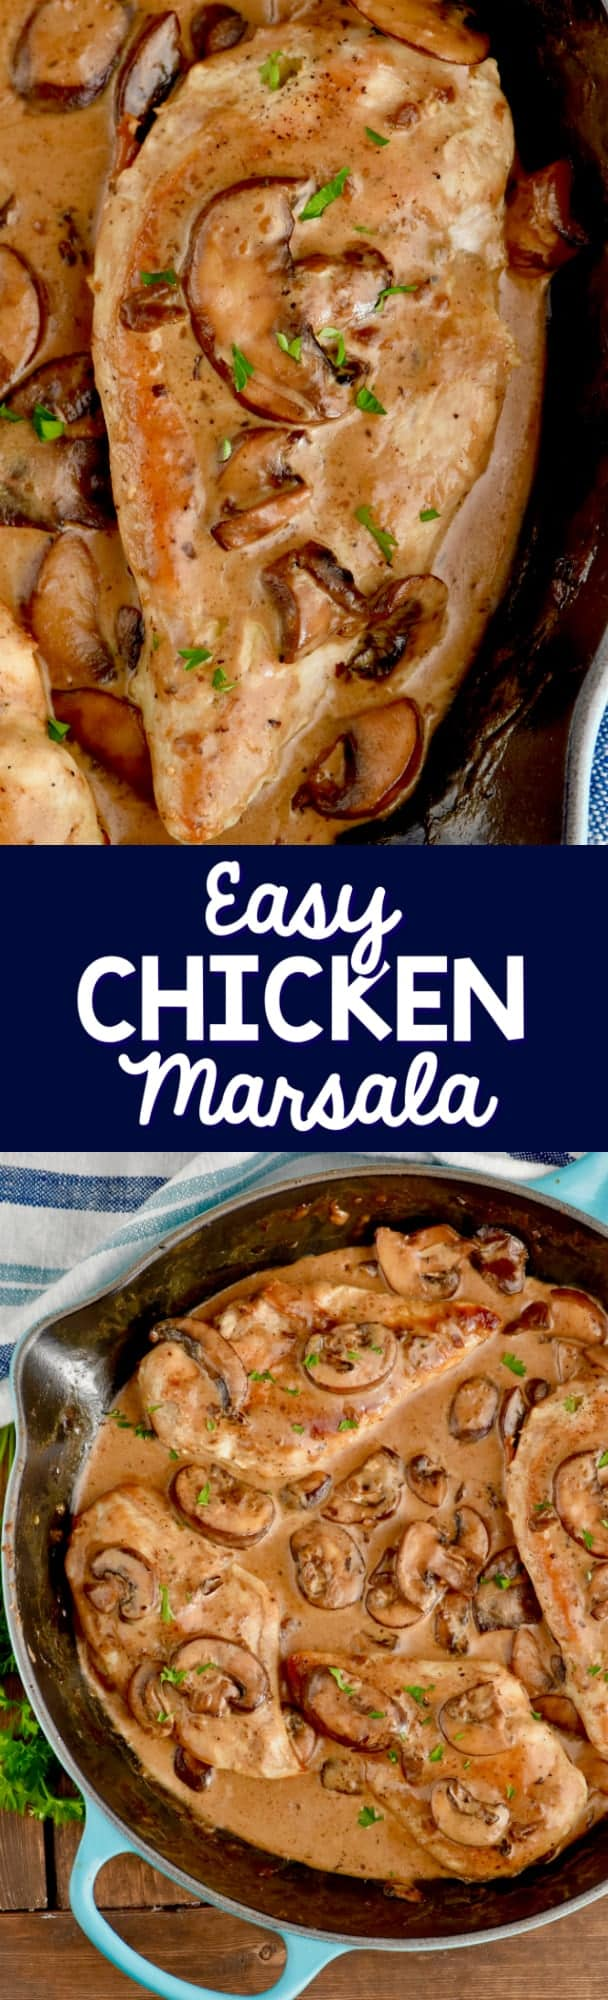 This Easy Chicken Marsala recipe is the best 30 minute meal.  It is so creamy and served with pasta for the perfect dinner idea for tonight.